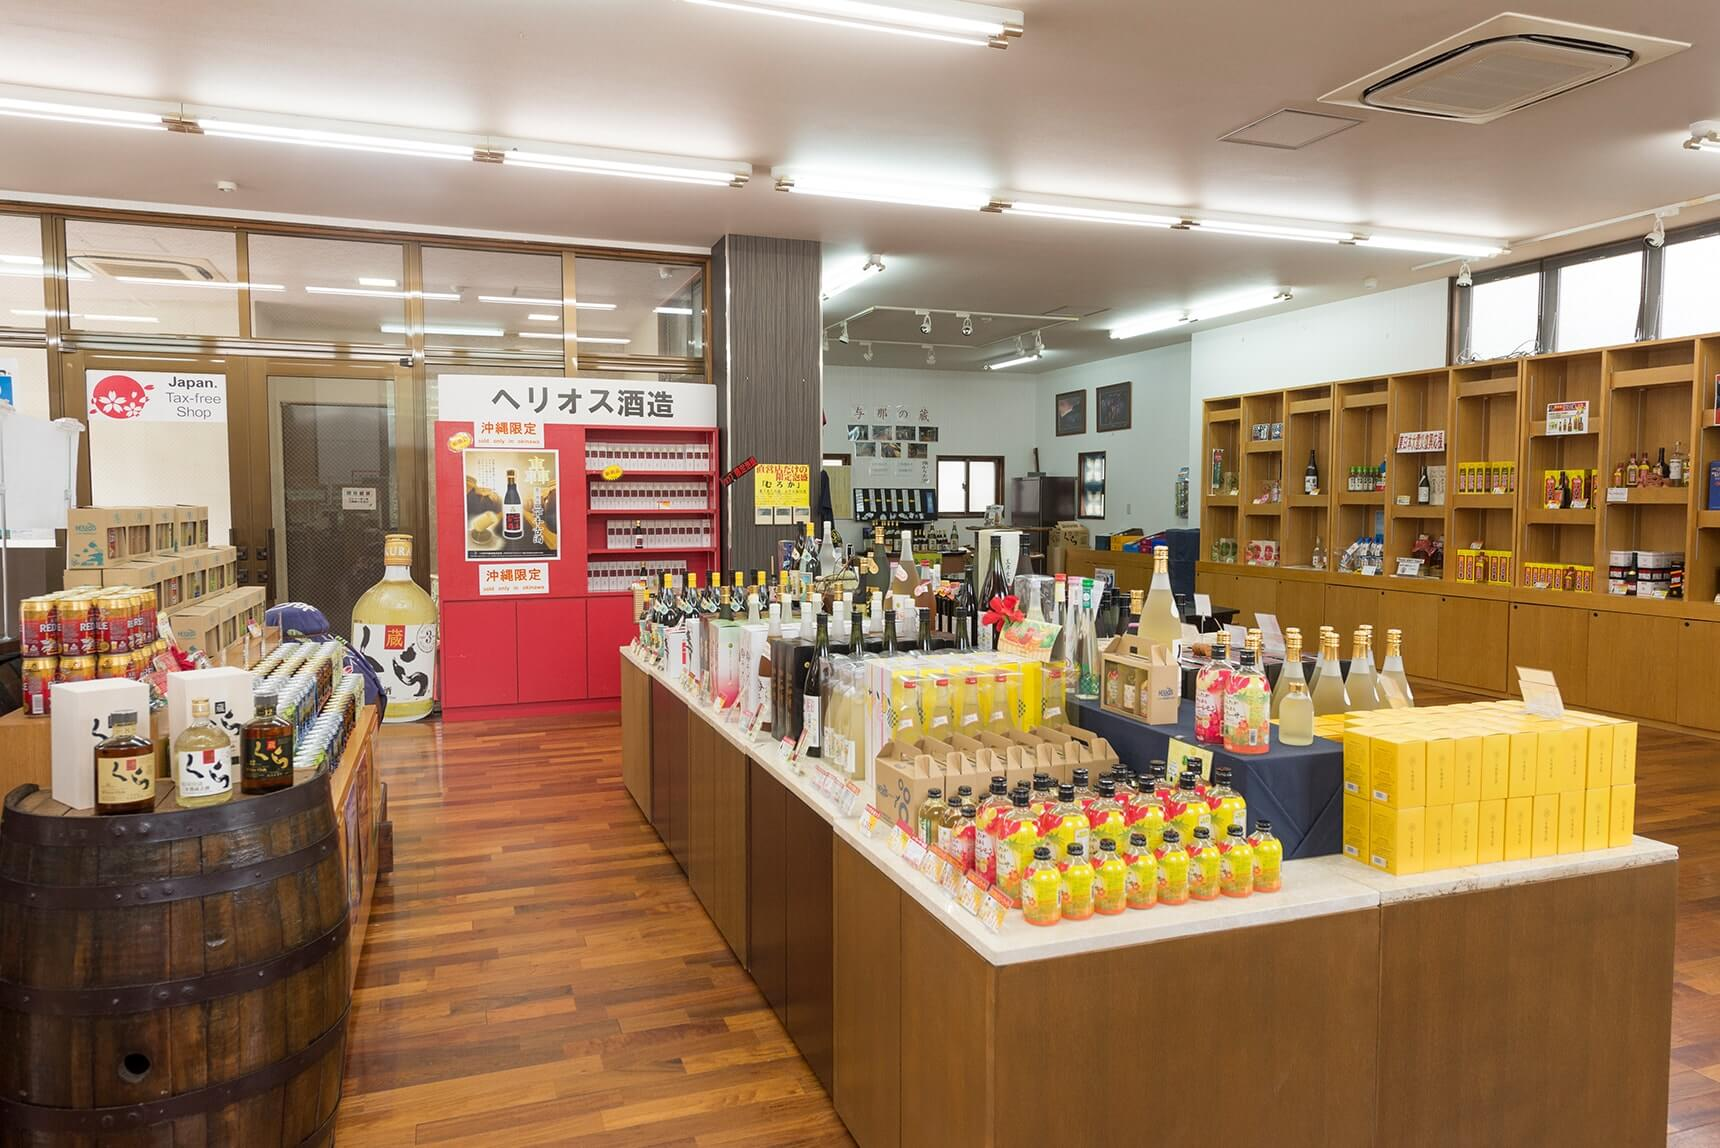 Kusu Kura Shop